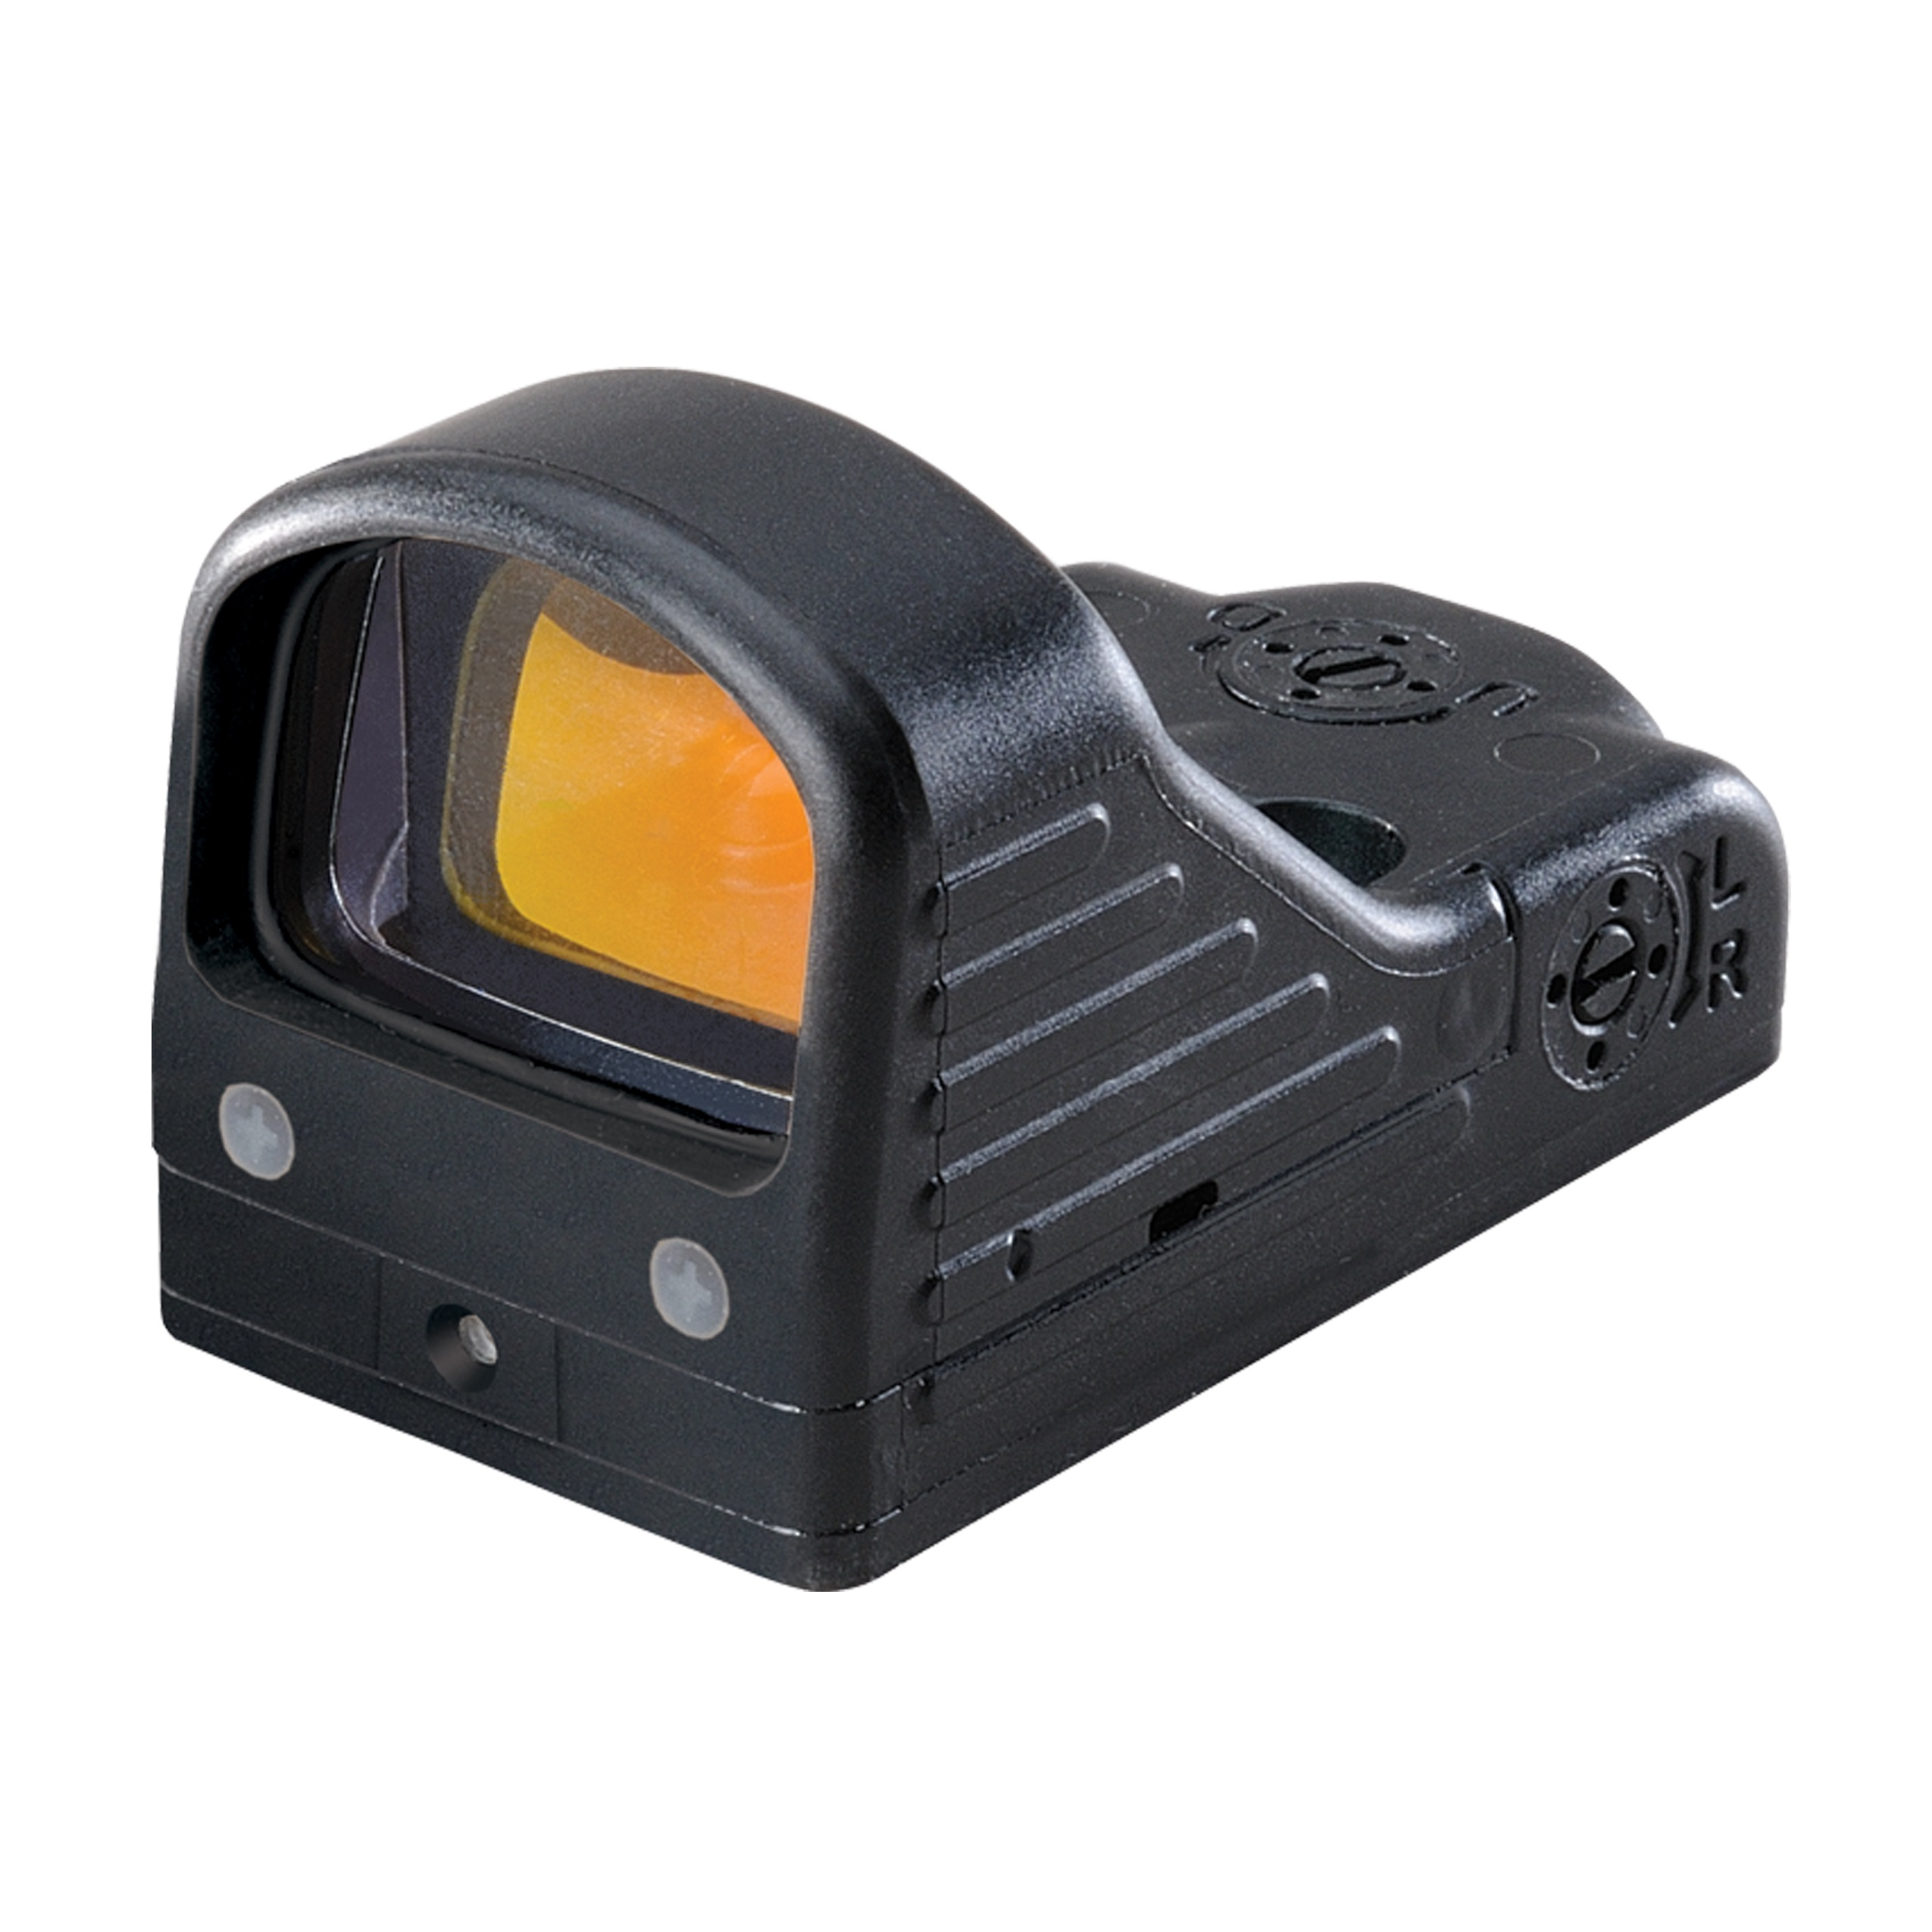 Eotech Mini Red Dot Sights Vortex Burris And Trijicon Red Dots